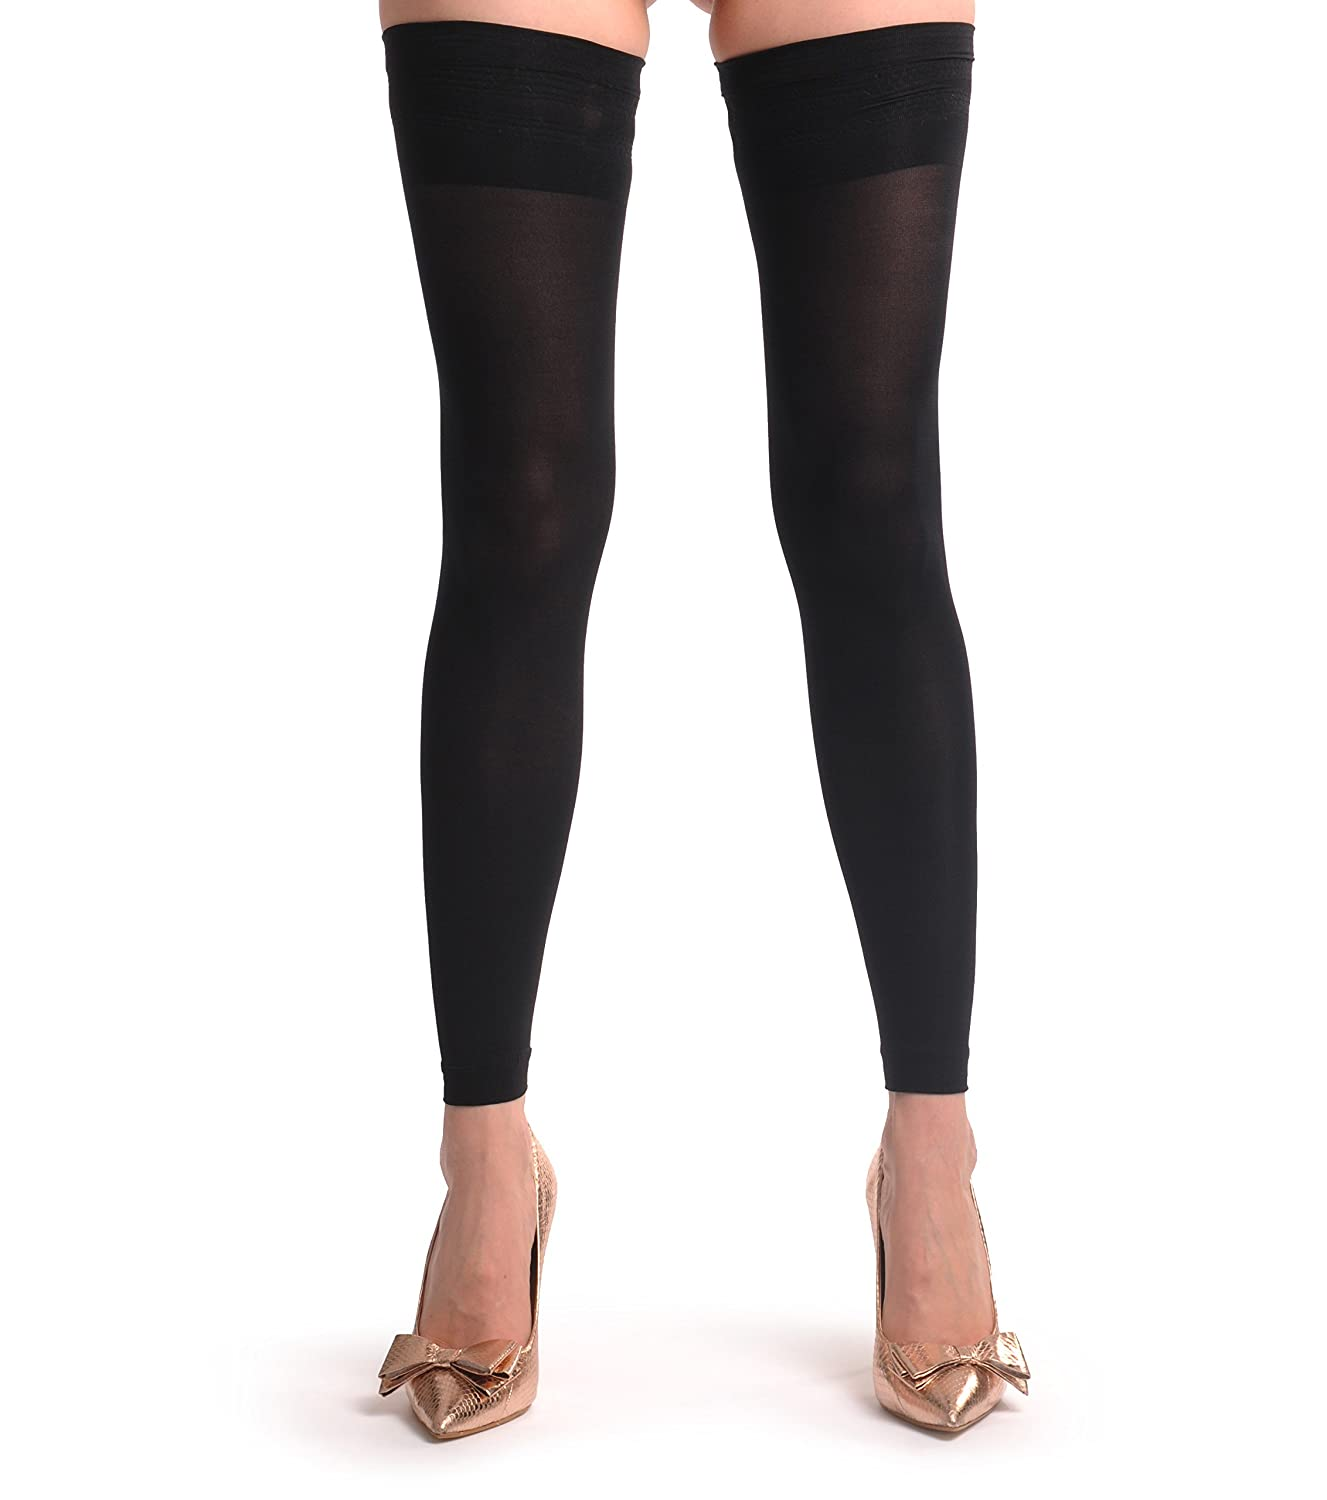 c377e104685 Sexy Black Footless Hold Ups With Silicon Top - Black Designer Hold Ups   Amazon.co.uk  Clothing